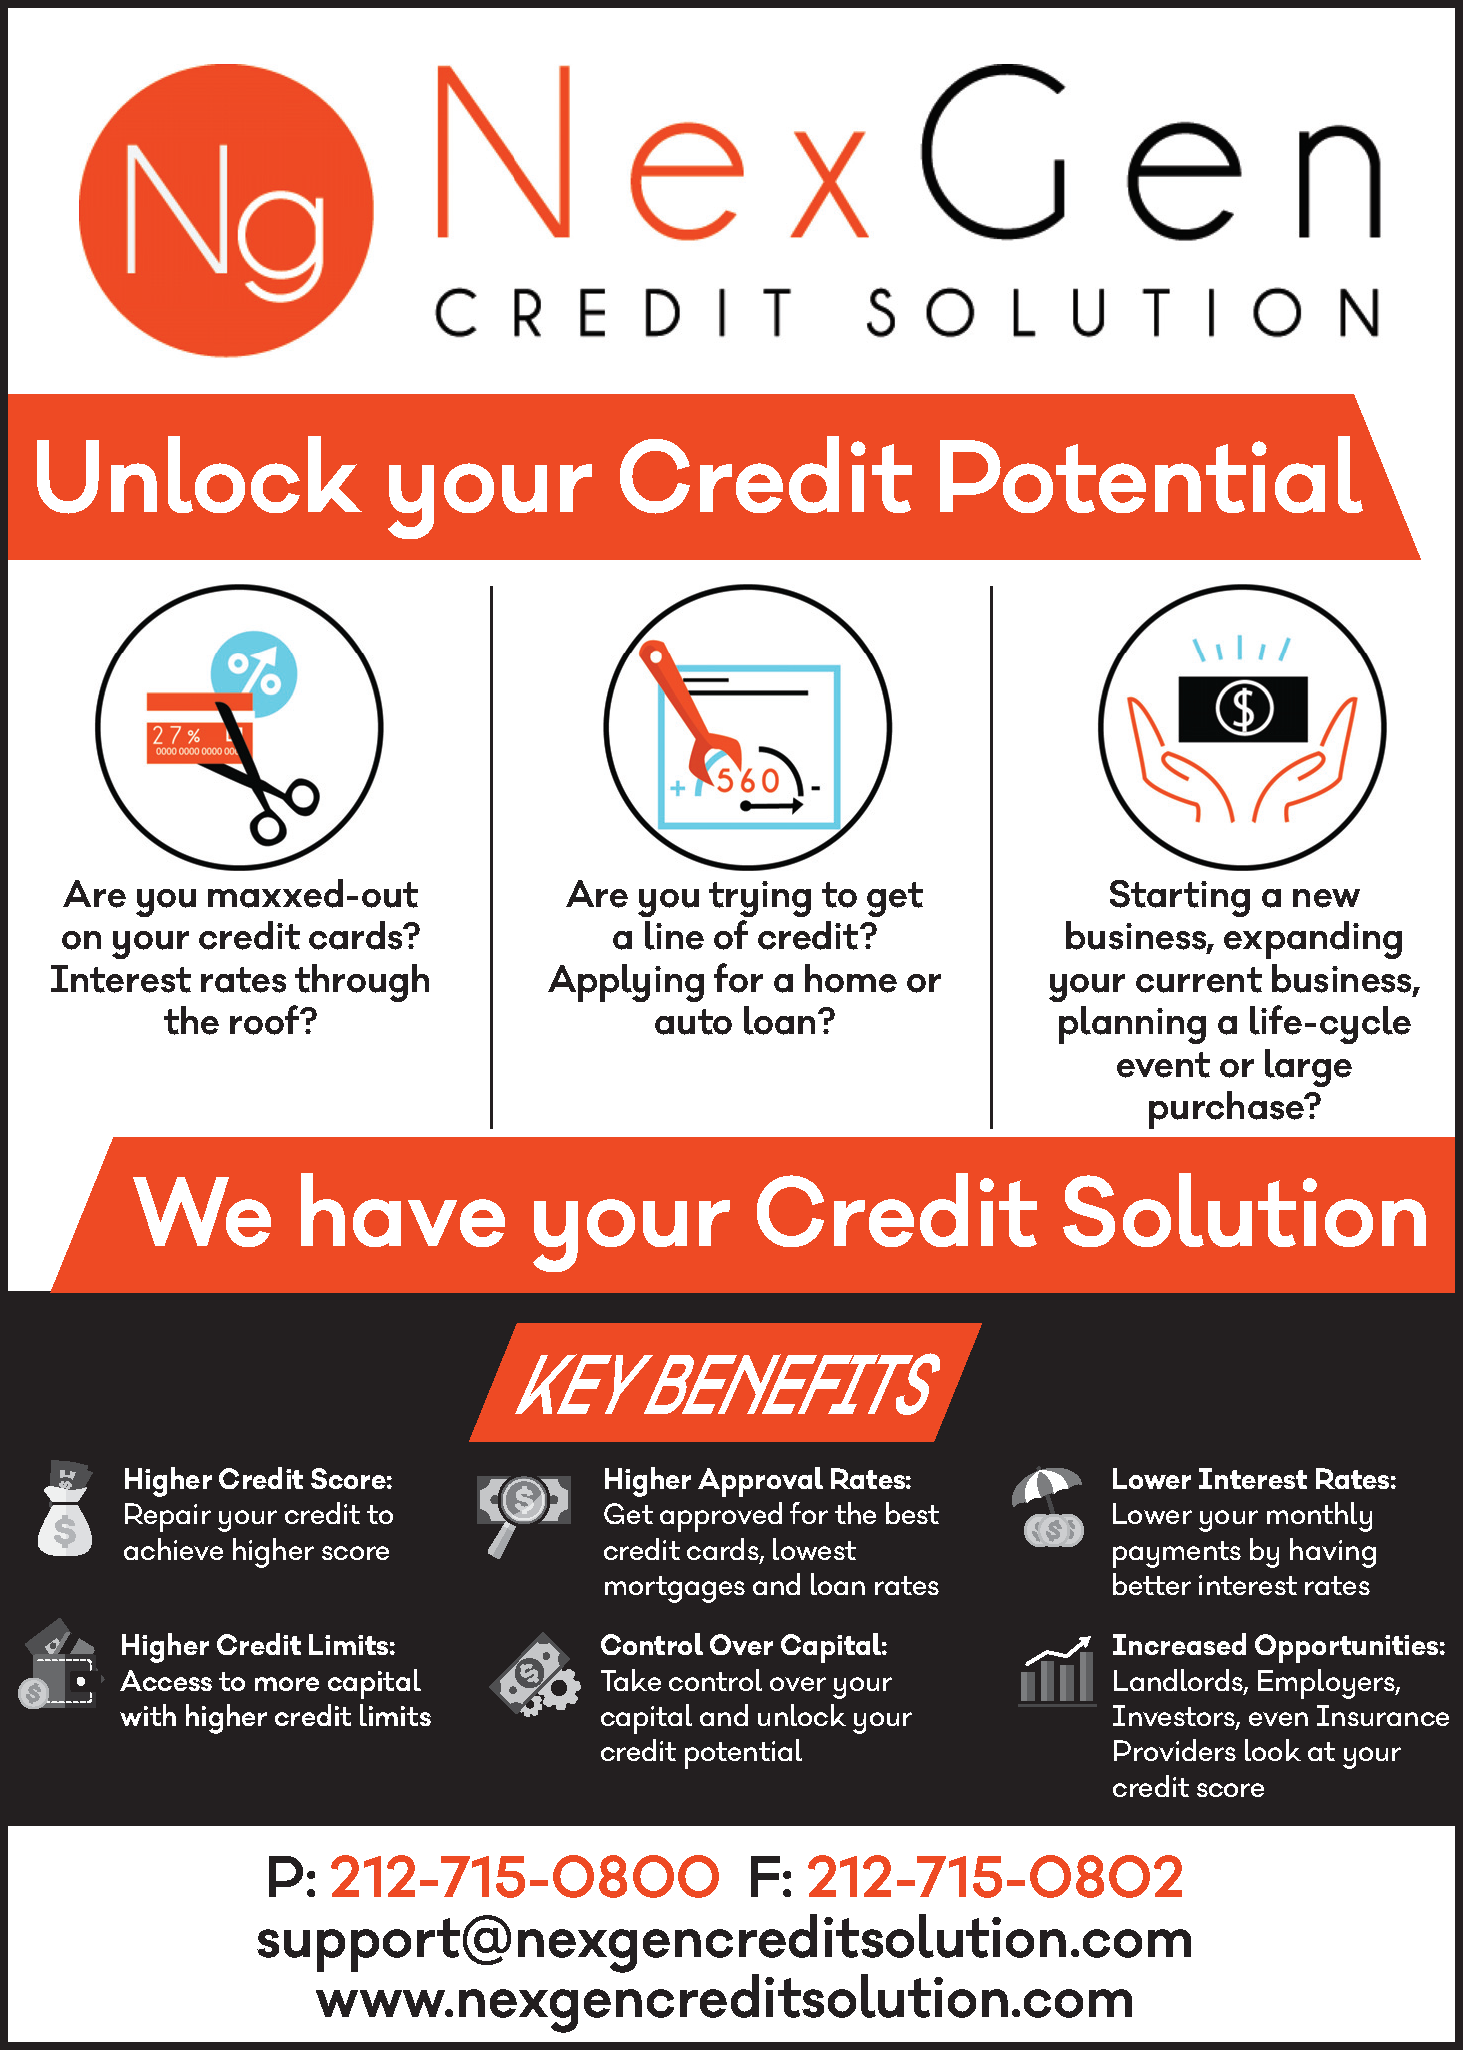 NexGen Credit Solutions